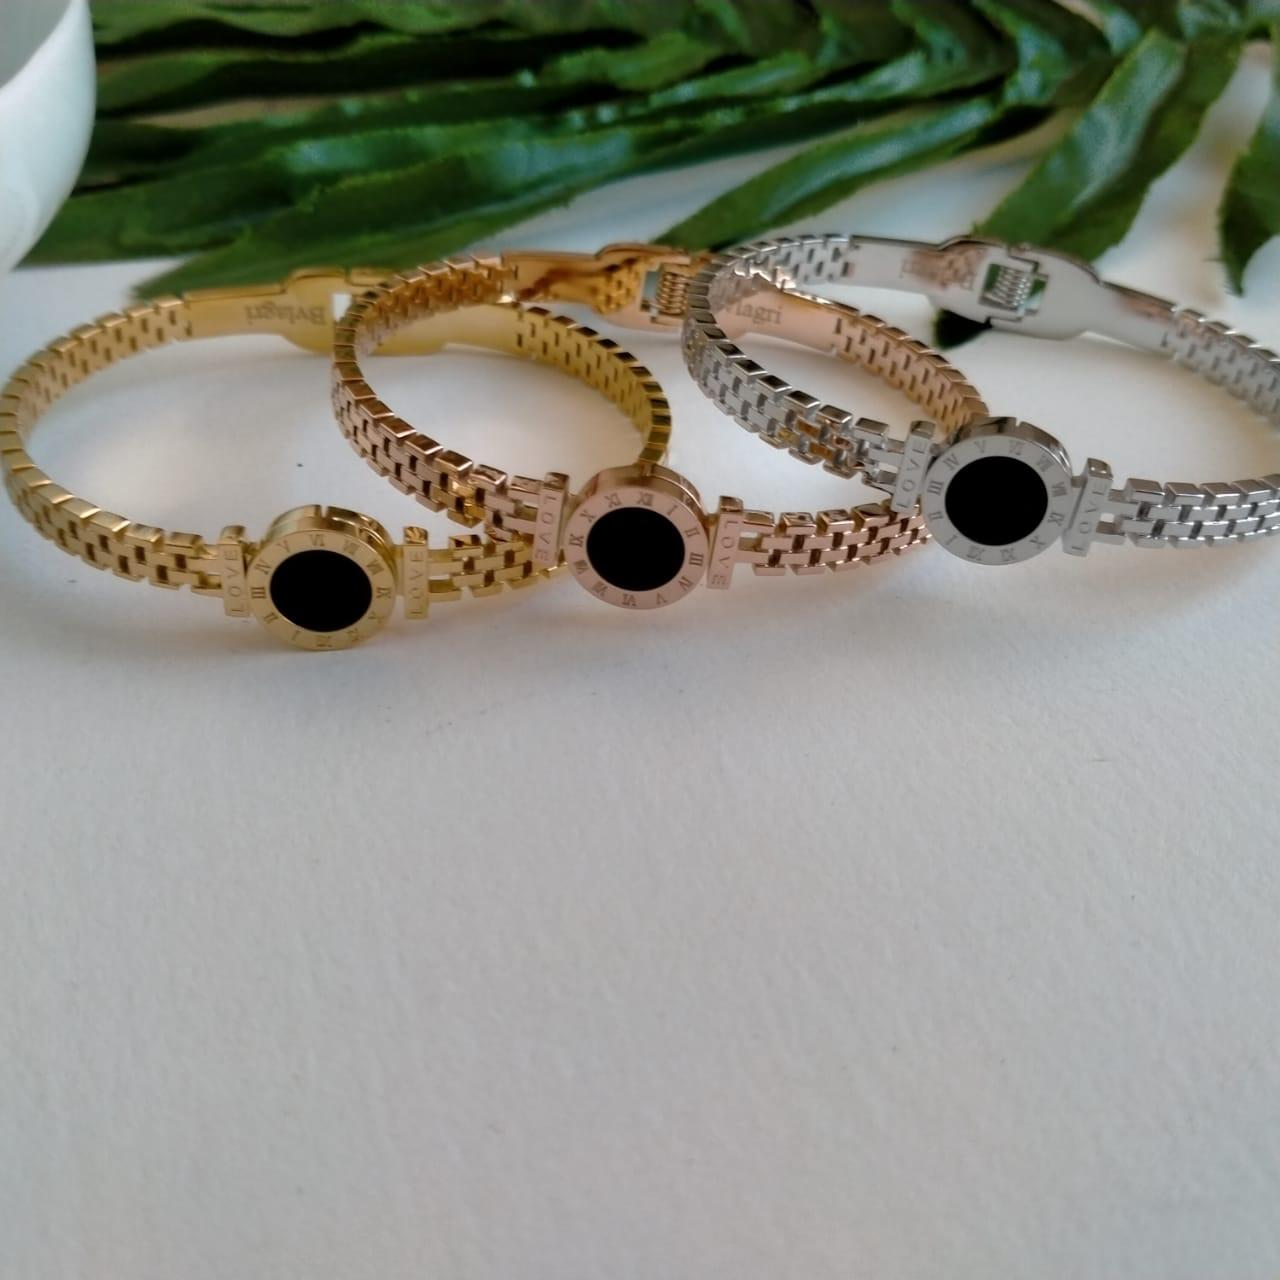 Tory Burch Bracelet Each